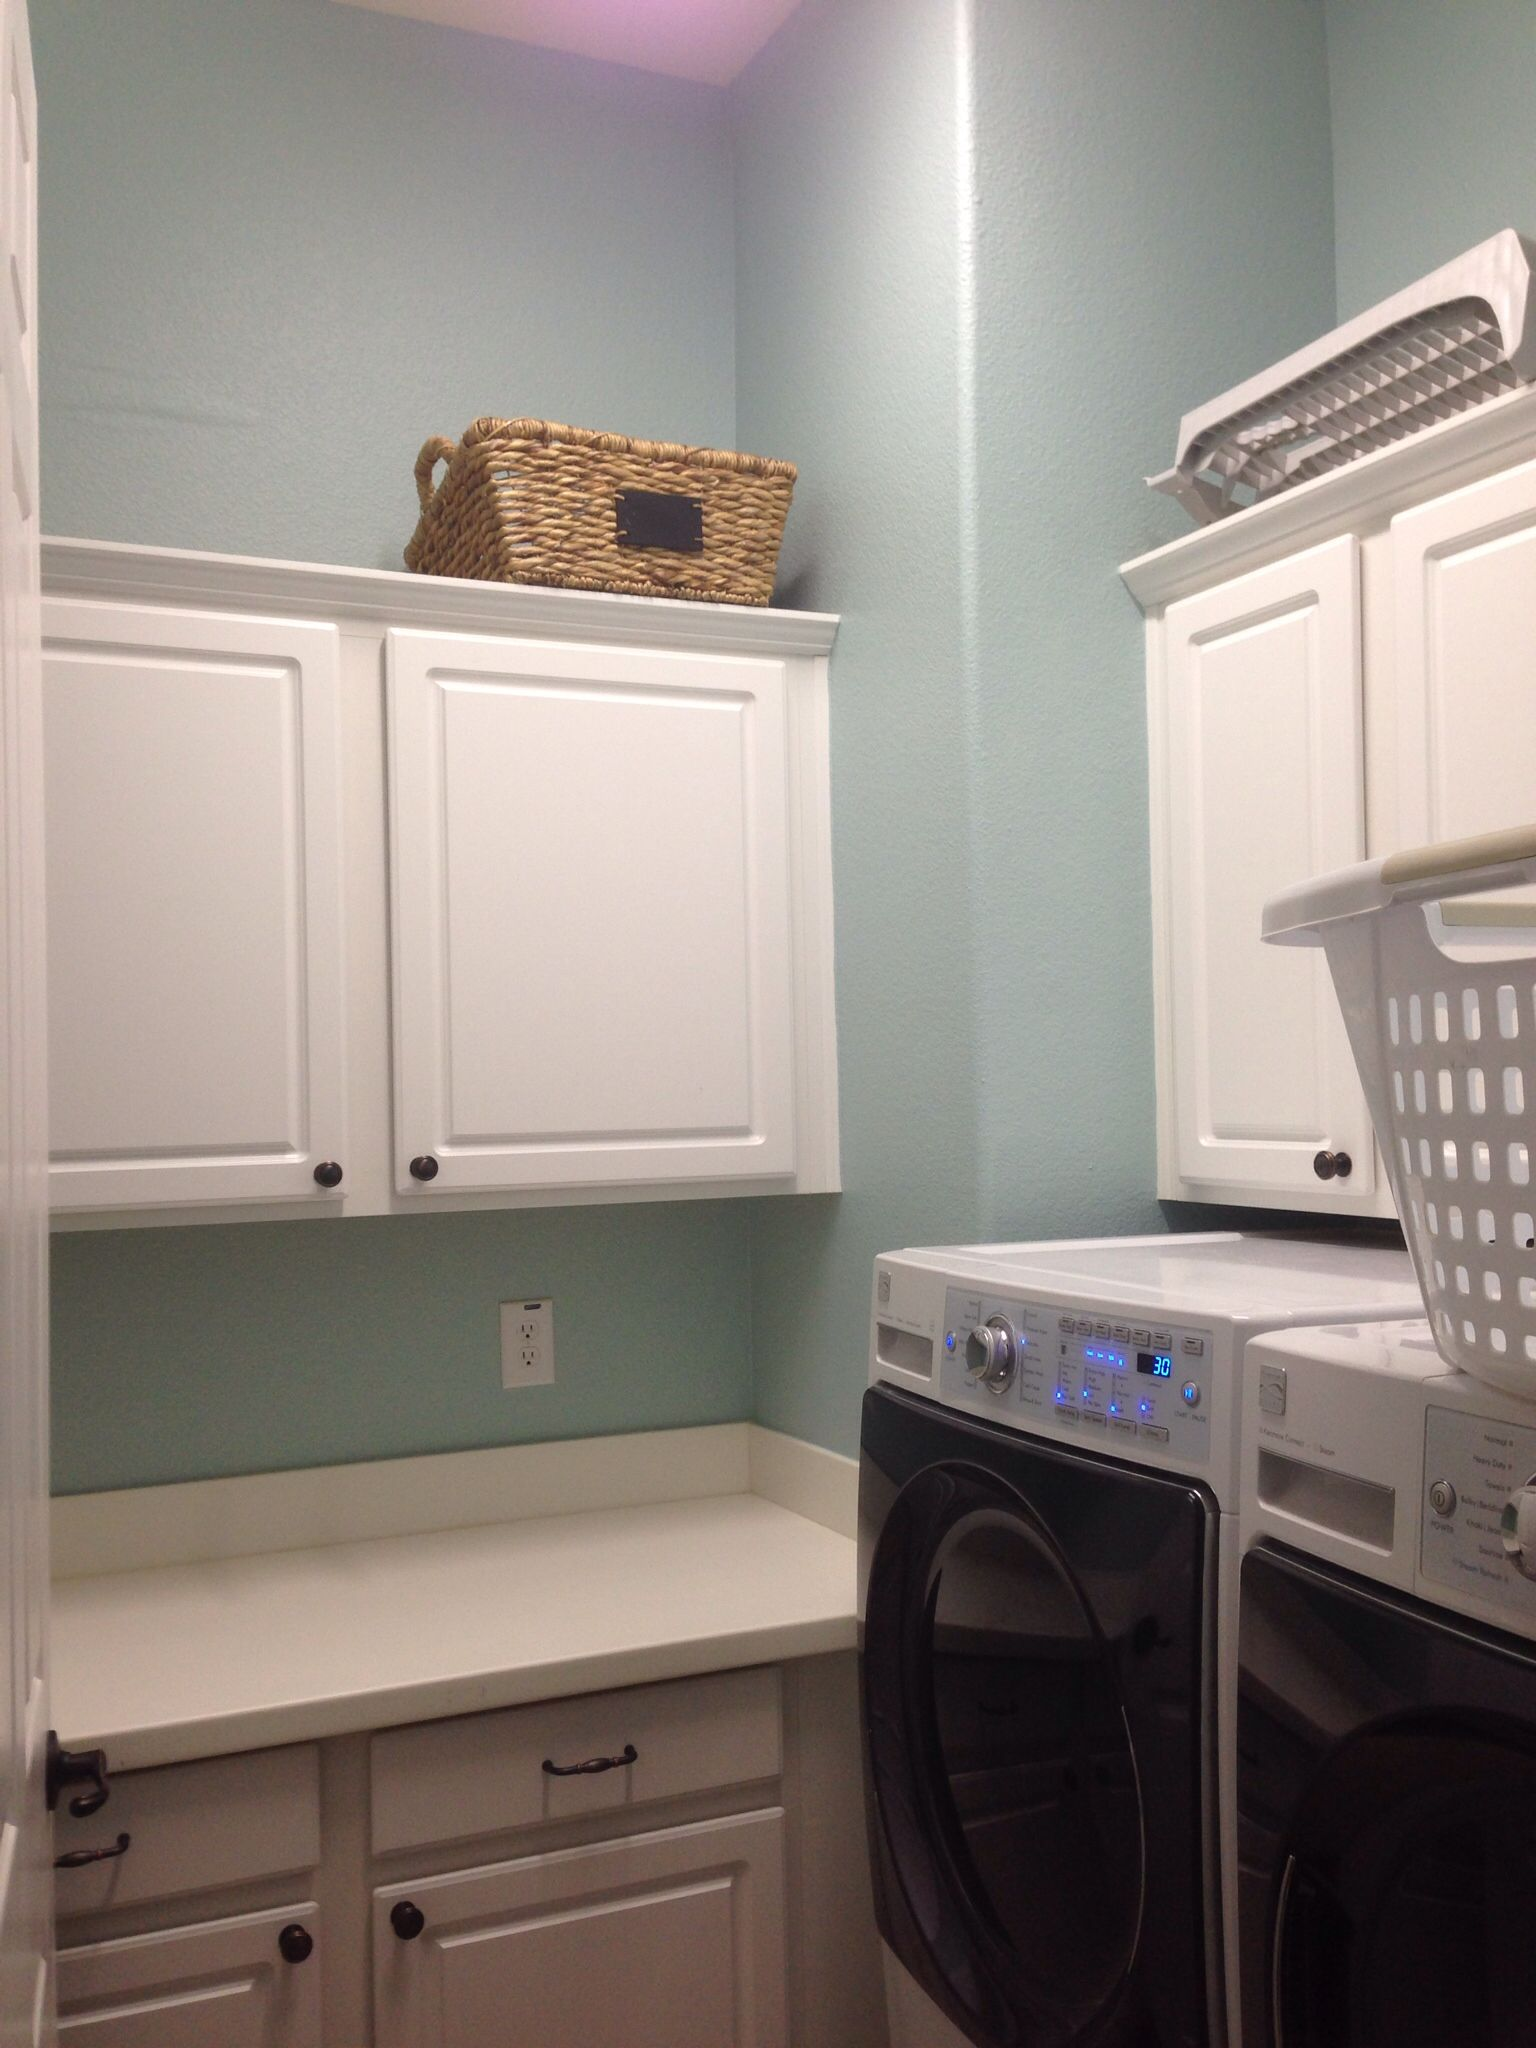 Watery By Sherwin Williams Is Such A Fun Utility Room Color Laundry Room Paint Laundry Room Colors Room Paint Colors Sherwin Williams